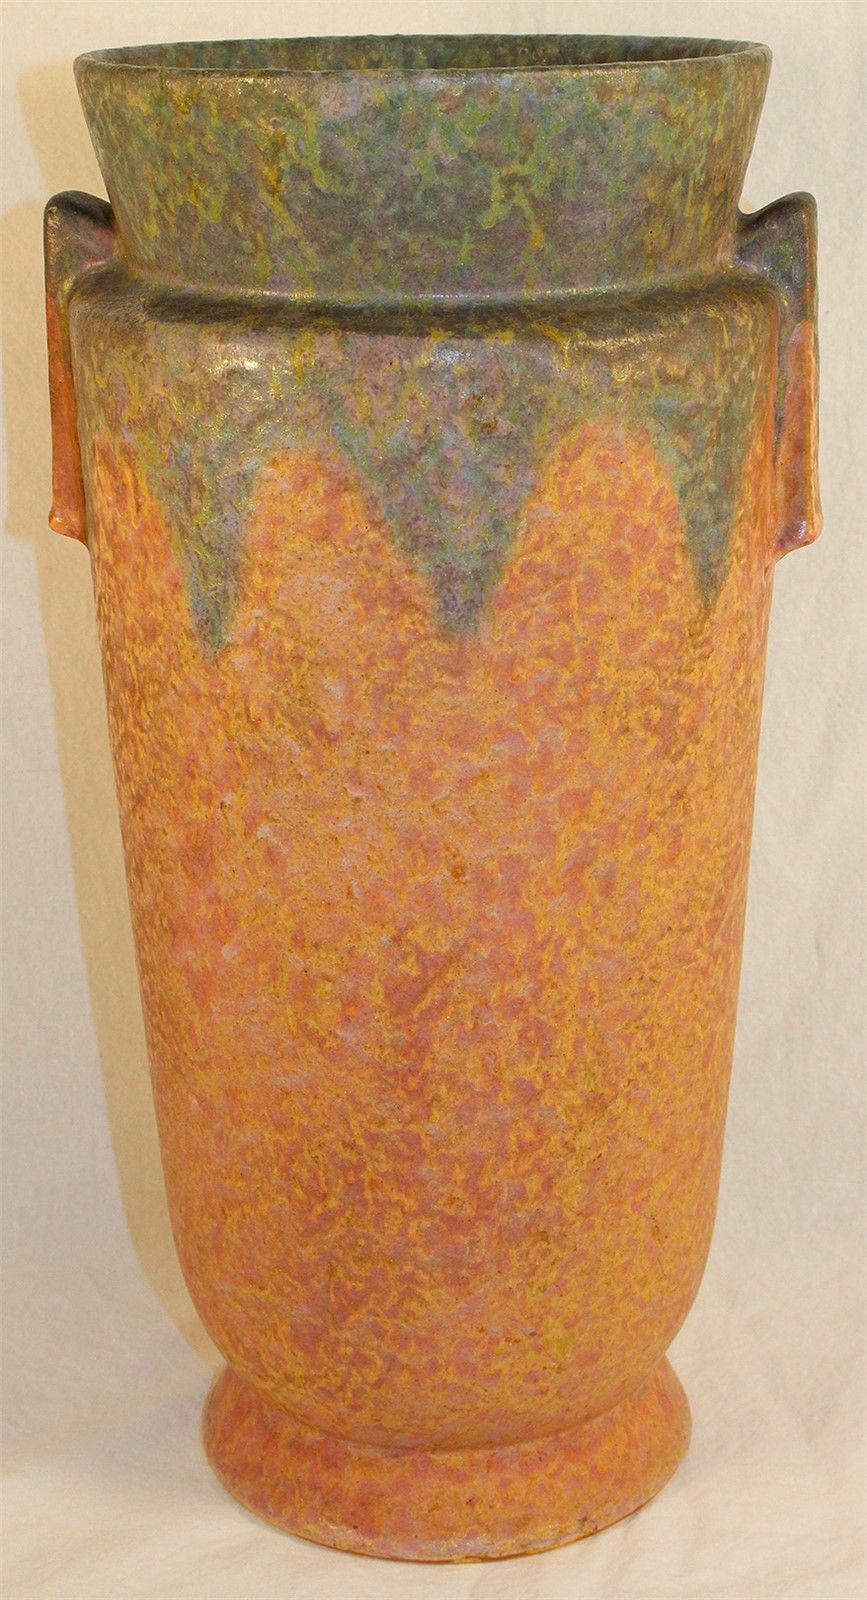 Roseville Pottery Carnelian II Red Vase 448-15 from Just Art Pottery